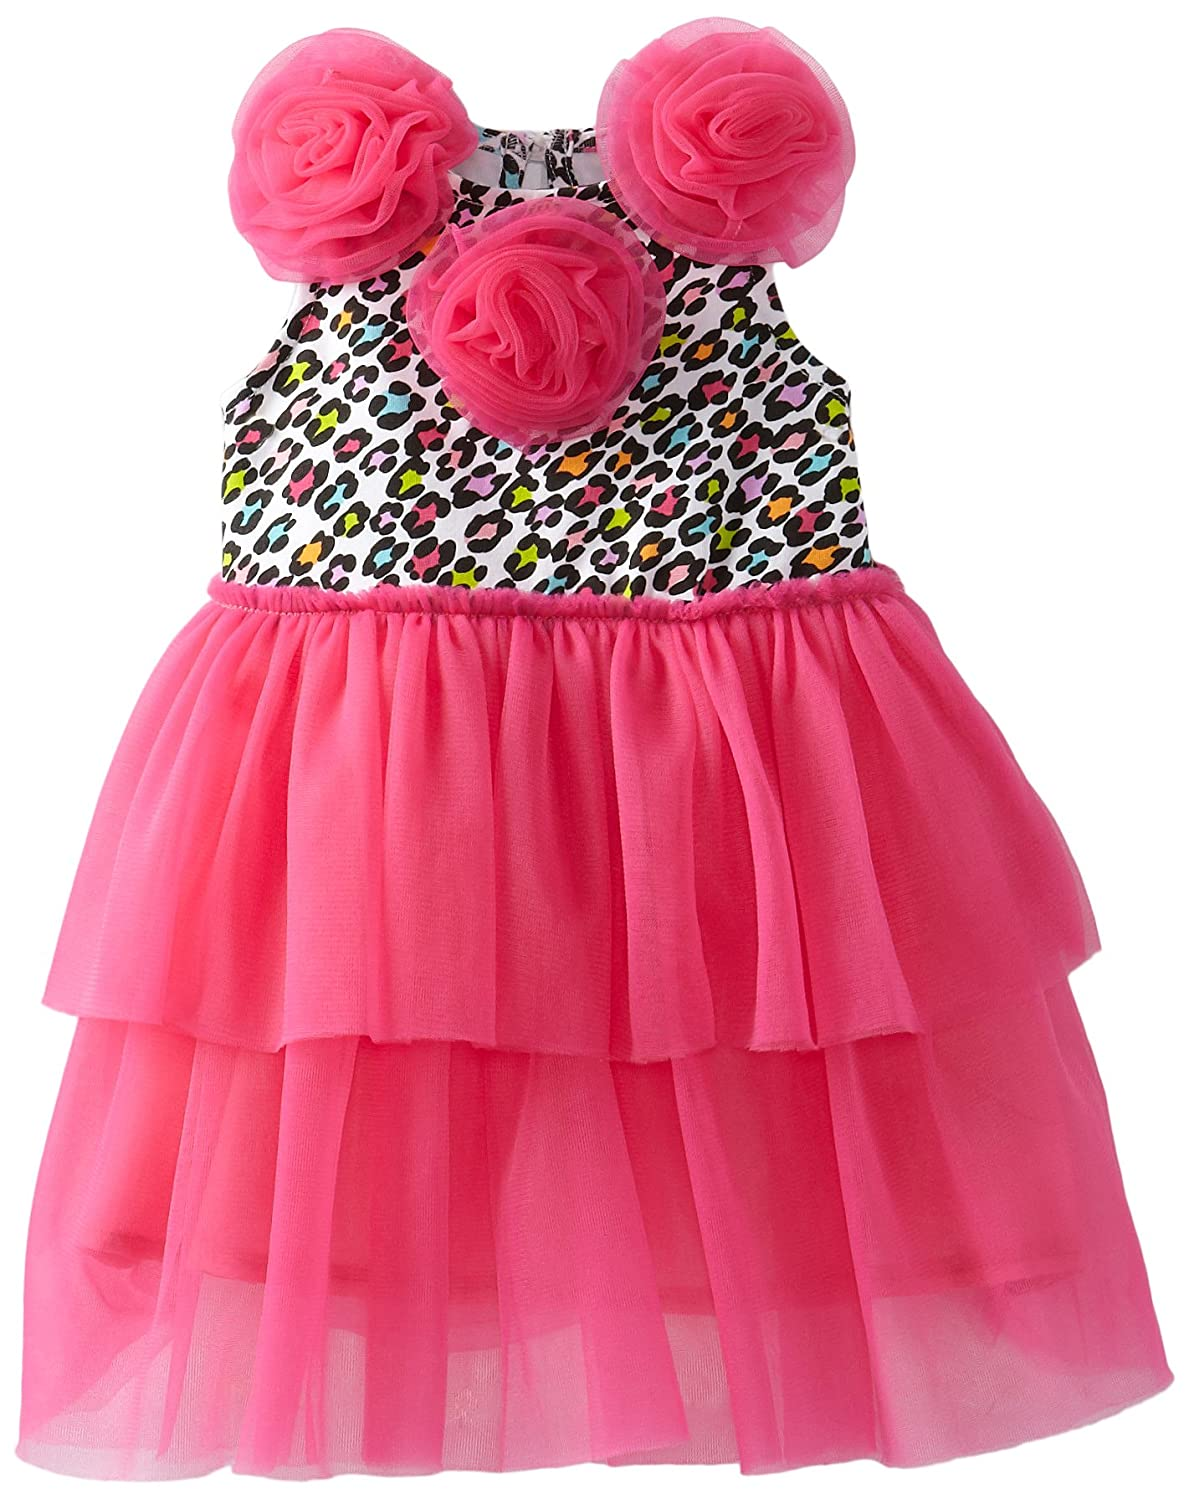 86a3dd421 Amazon.com: Mud Pie Baby Girls' Leopard Print Dress: Infant And Toddler  Playwear Dresses: Clothing